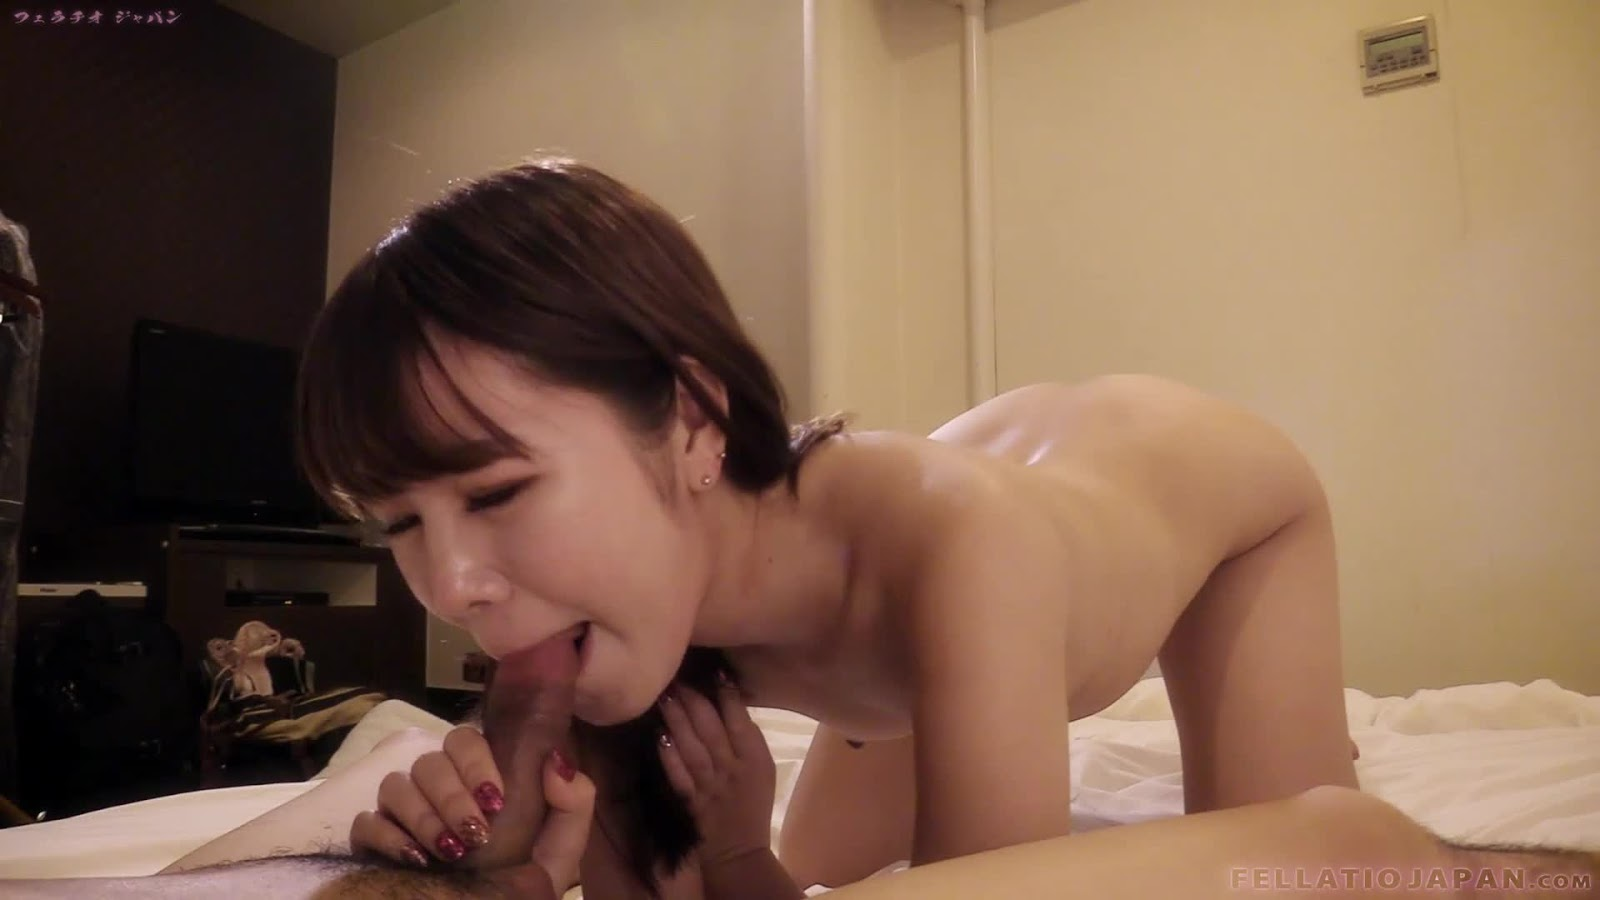 FellatioJapan 328.mp4 - Girlsdelta